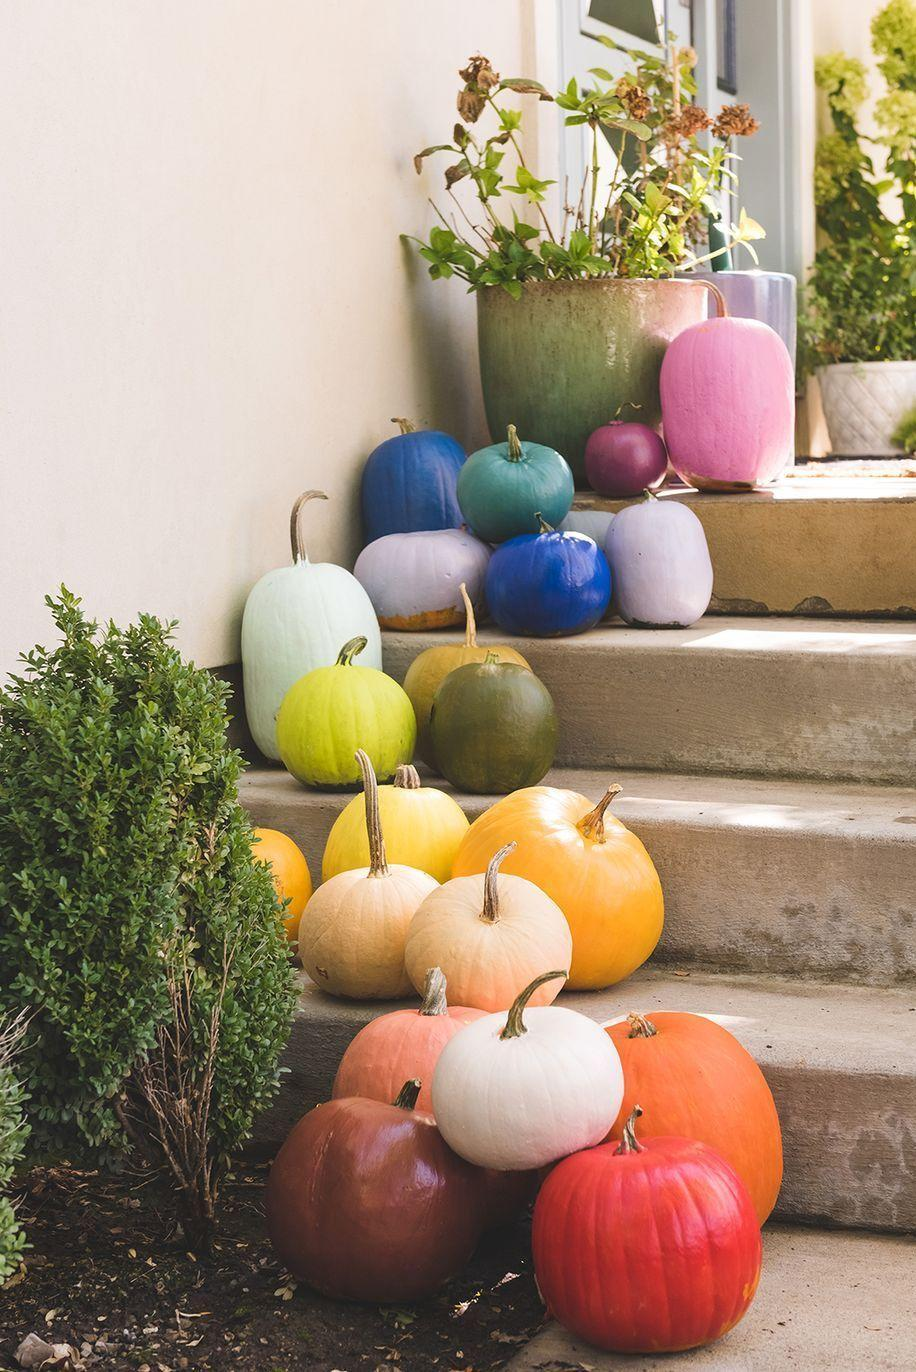 "<p>Pick up a trunk-load of pumpkins at the pumpkin patch and paint them a variety of colors for a cool rainbow effect. </p><p><em><a href=""https://thehousethatlarsbuilt.com/2018/10/diy-rainbow-pumpkins.html/"" rel=""nofollow noopener"" target=""_blank"" data-ylk=""slk:Get the tutorial at The House That Lars Built »"" class=""link rapid-noclick-resp"">Get the tutorial at The House That Lars Built »</a></em></p>"